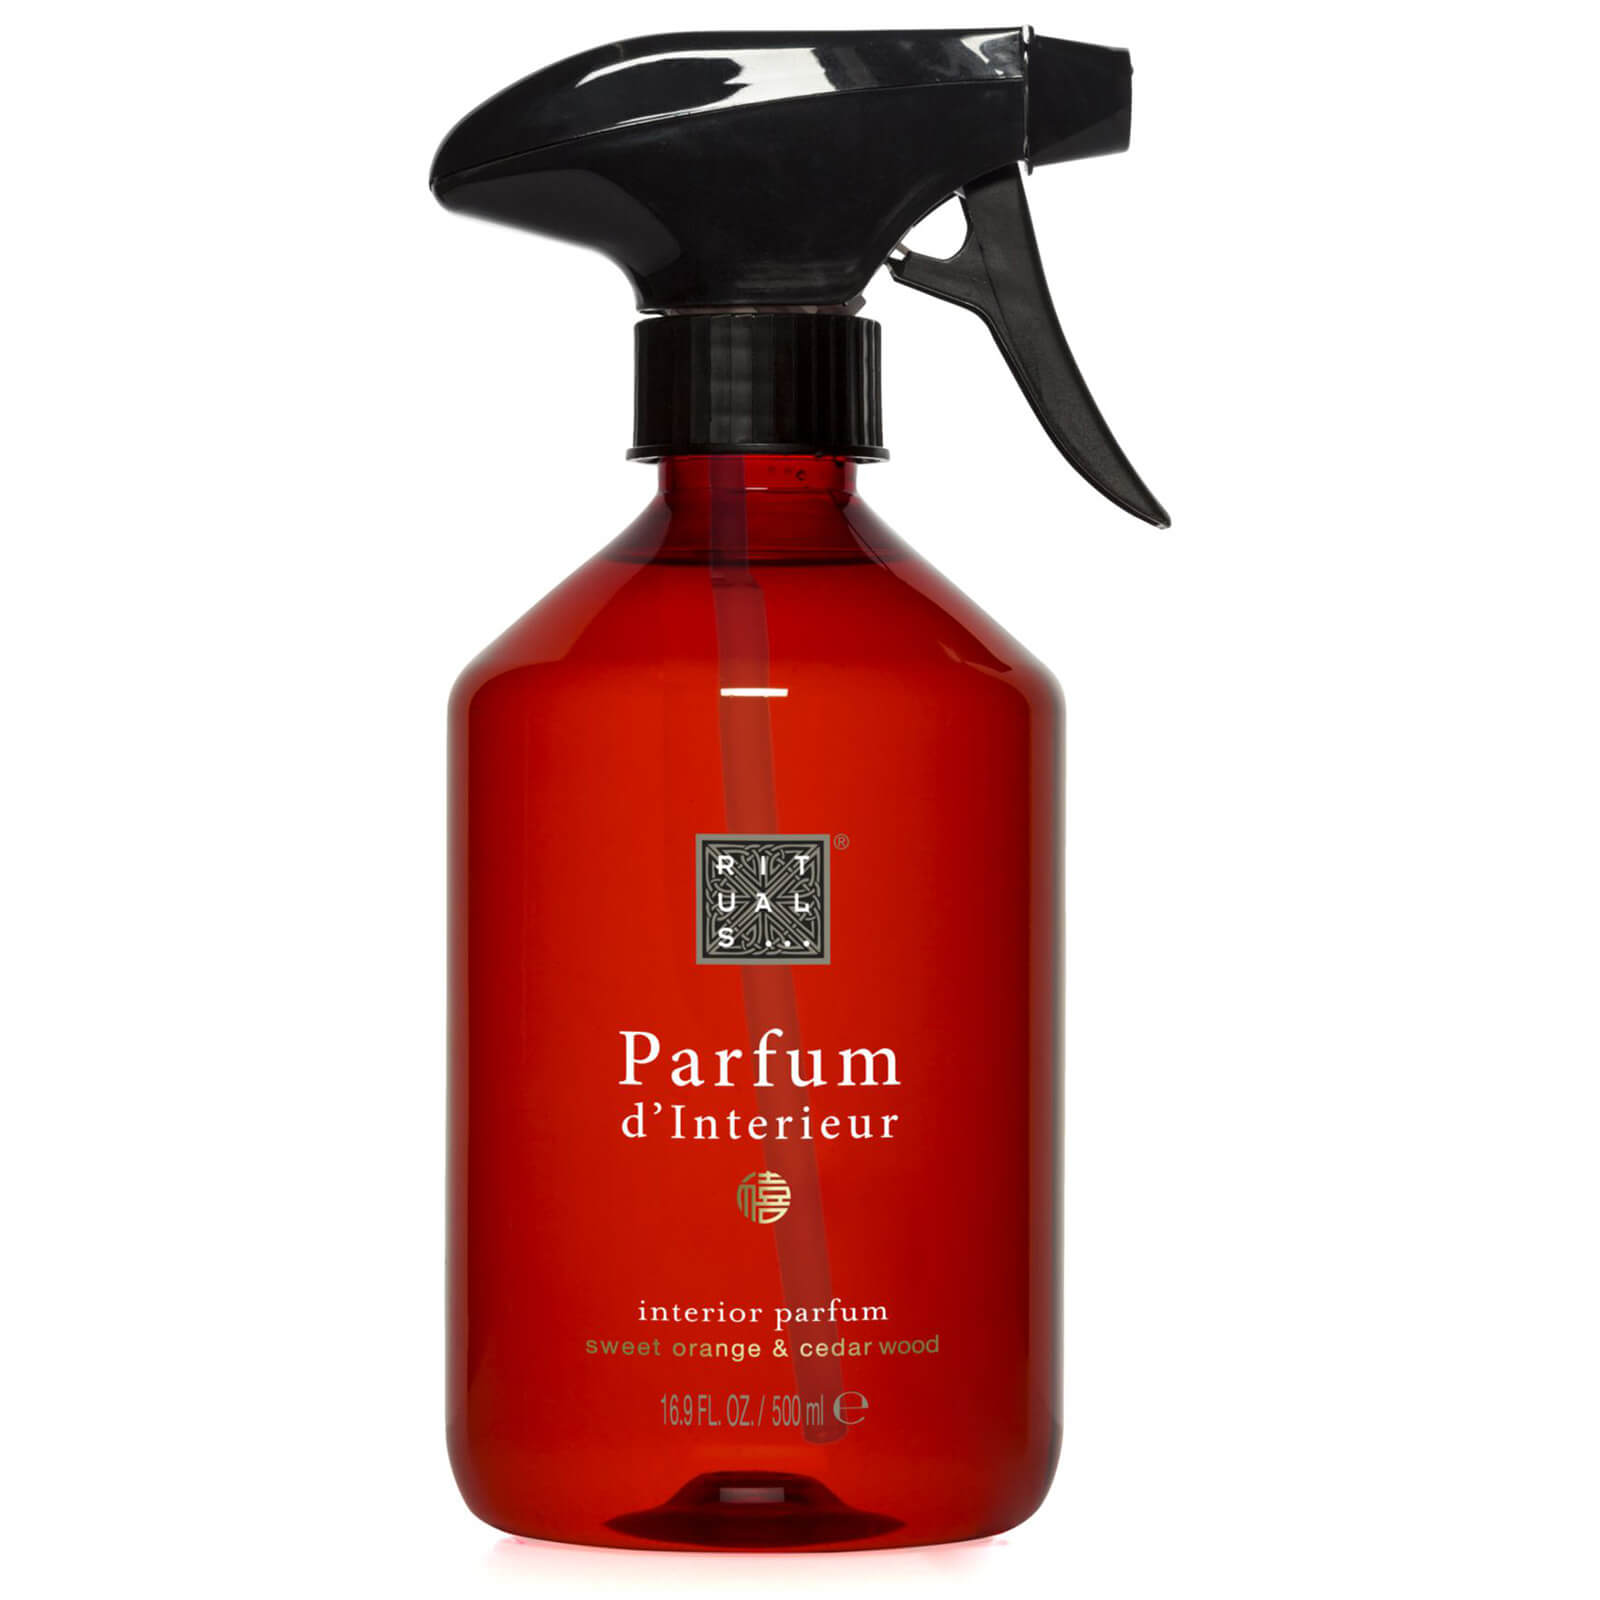 Parfum D'intérieur Rituals Rituals The Ritual Of Happy Buddha Parfum D Interieur 500ml